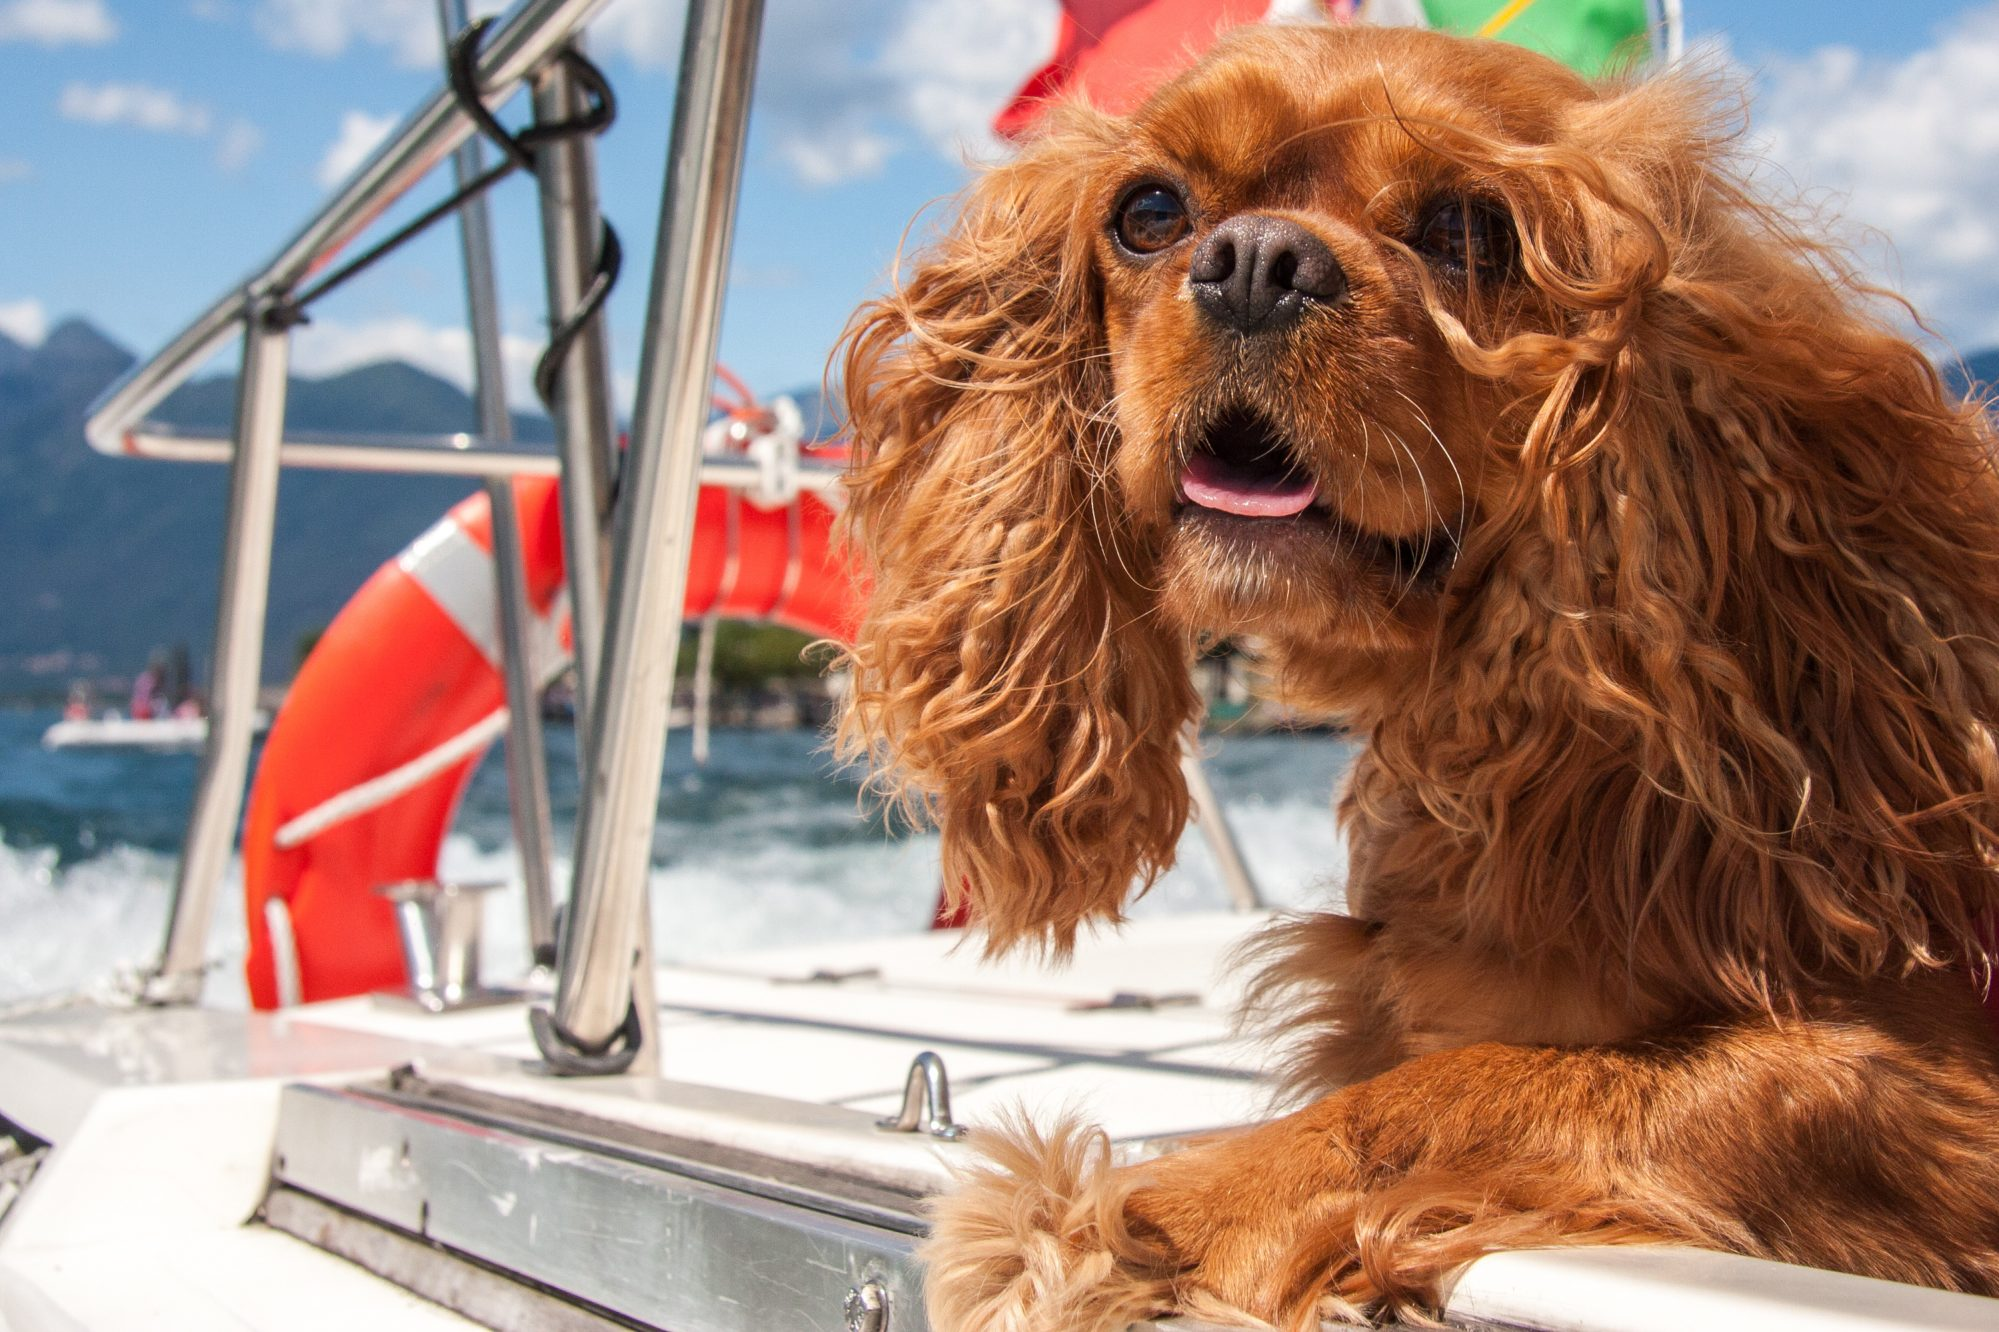 Boating with Dogs: Tips for Taking Your Dog Boating